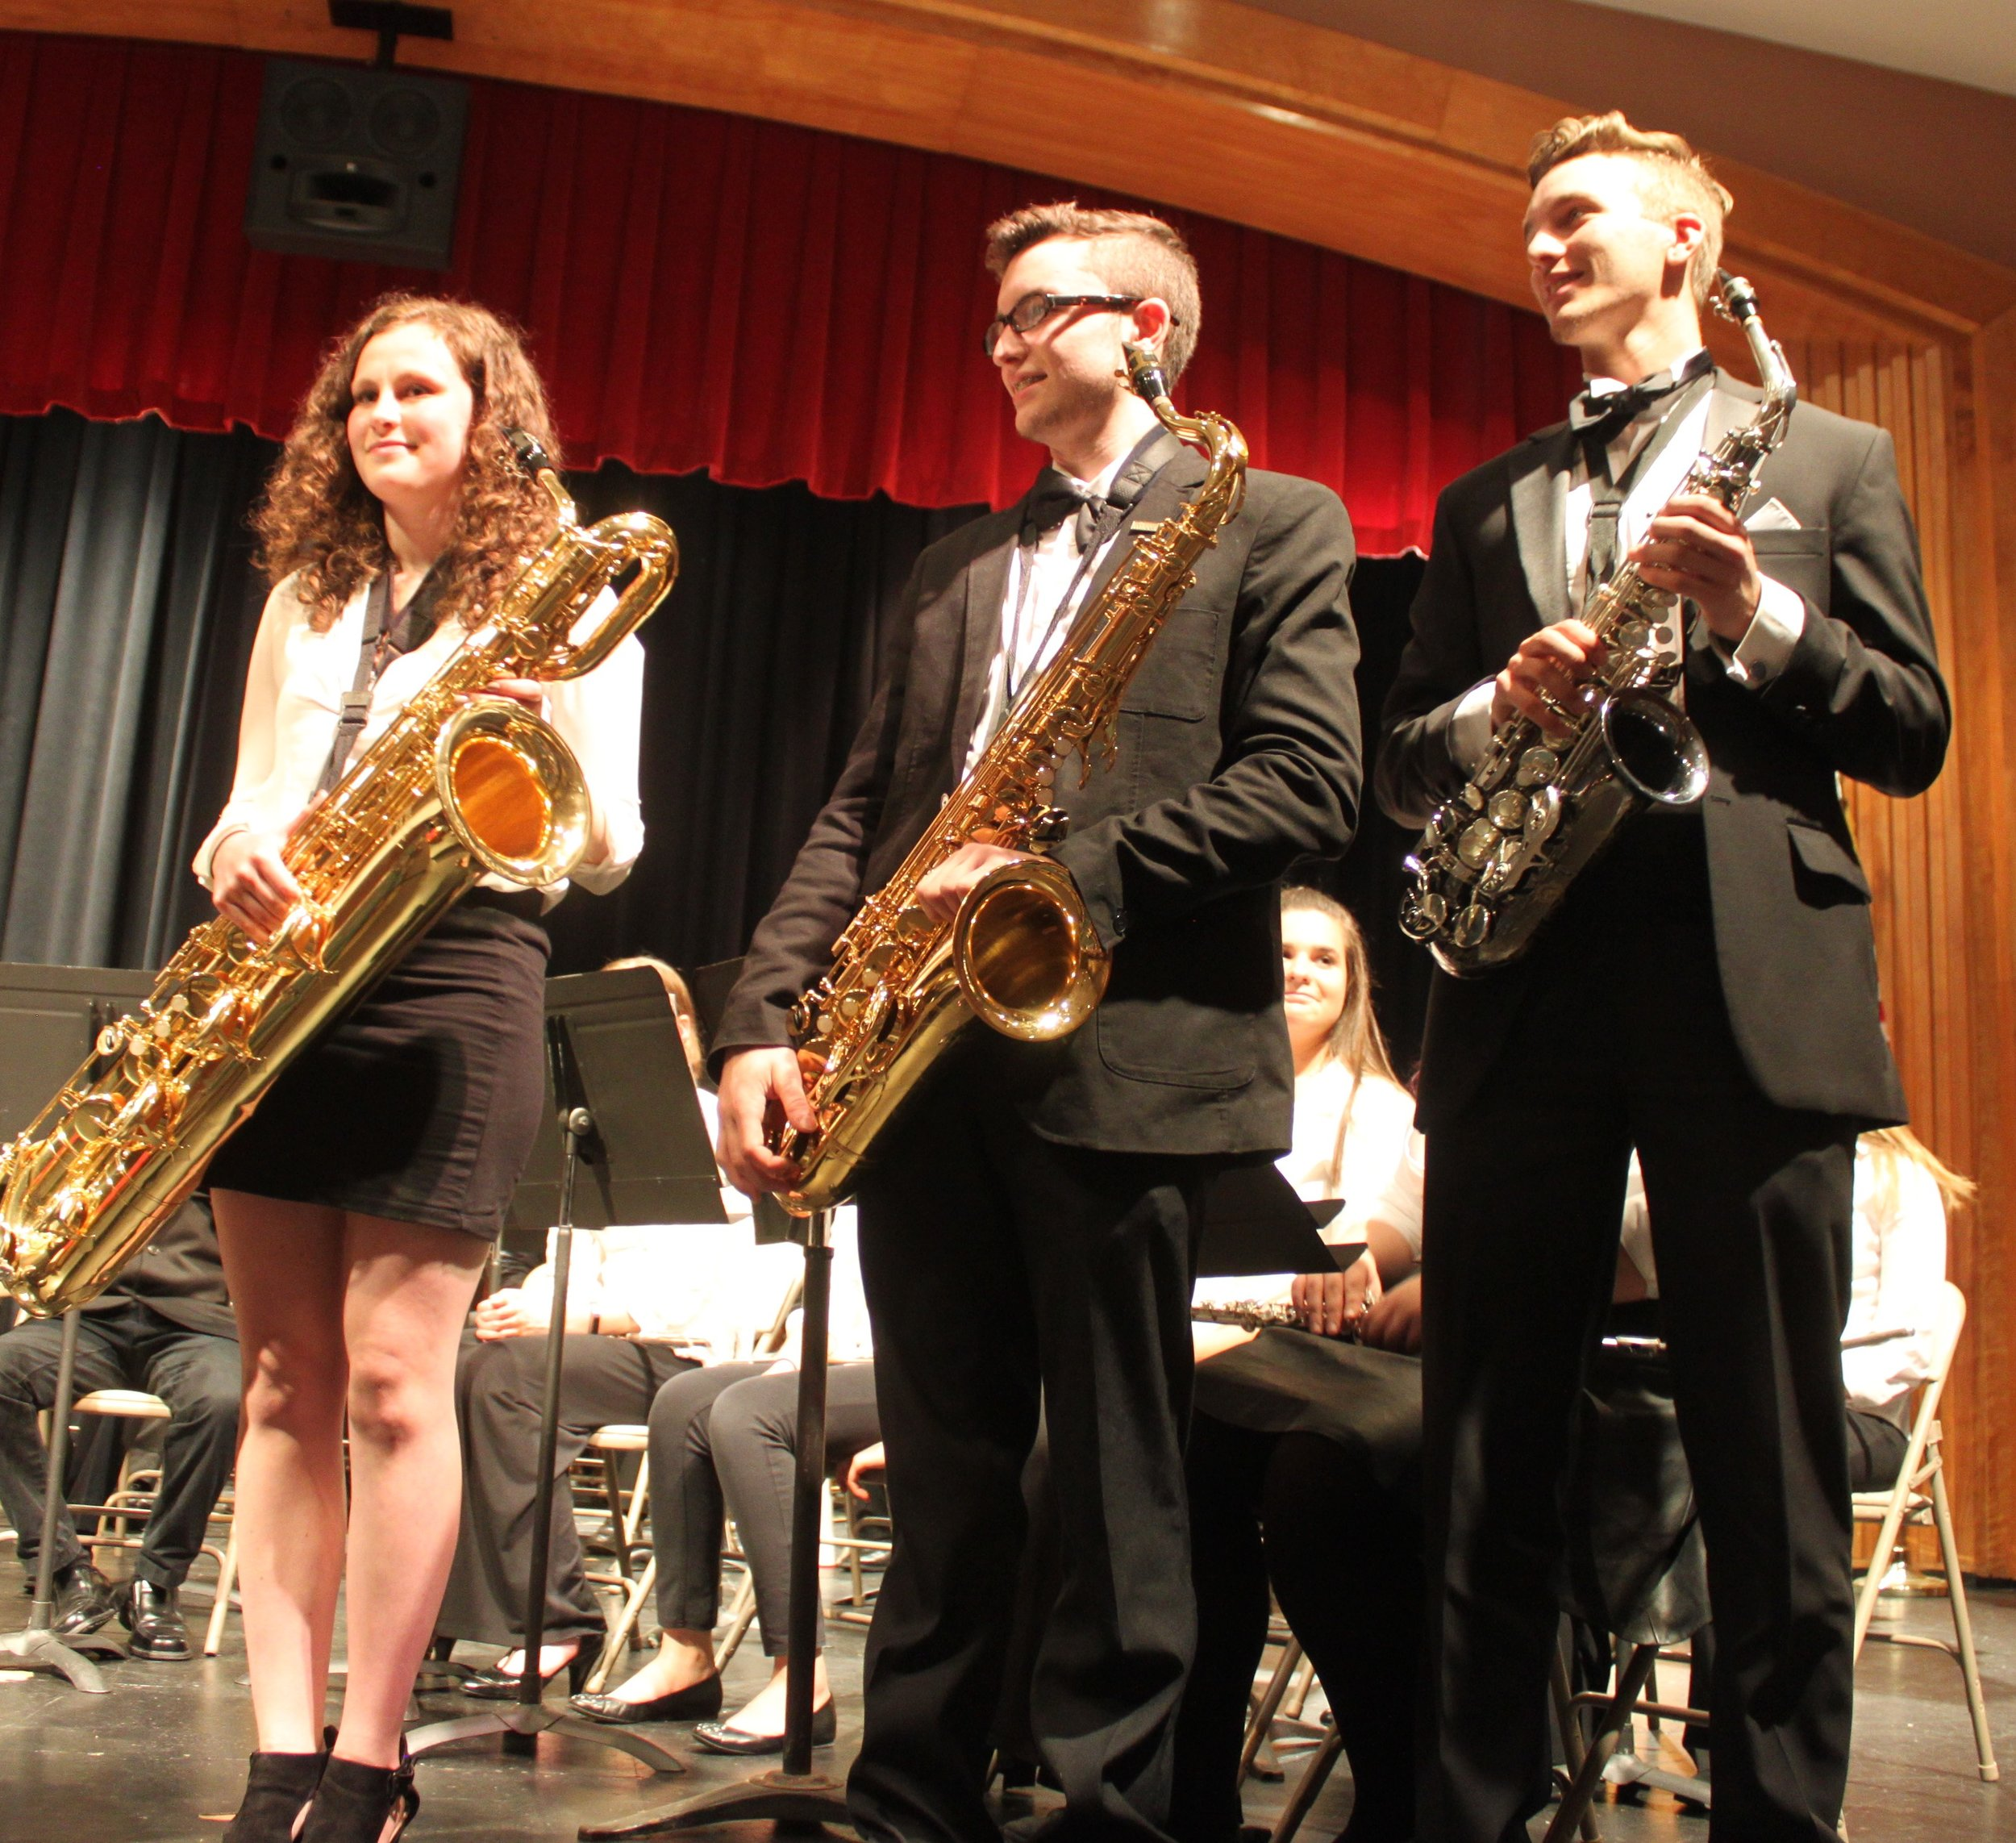 Saxophone soloist acknowledged in the Claflin Hill Youth Symphonies Wind Ensemble